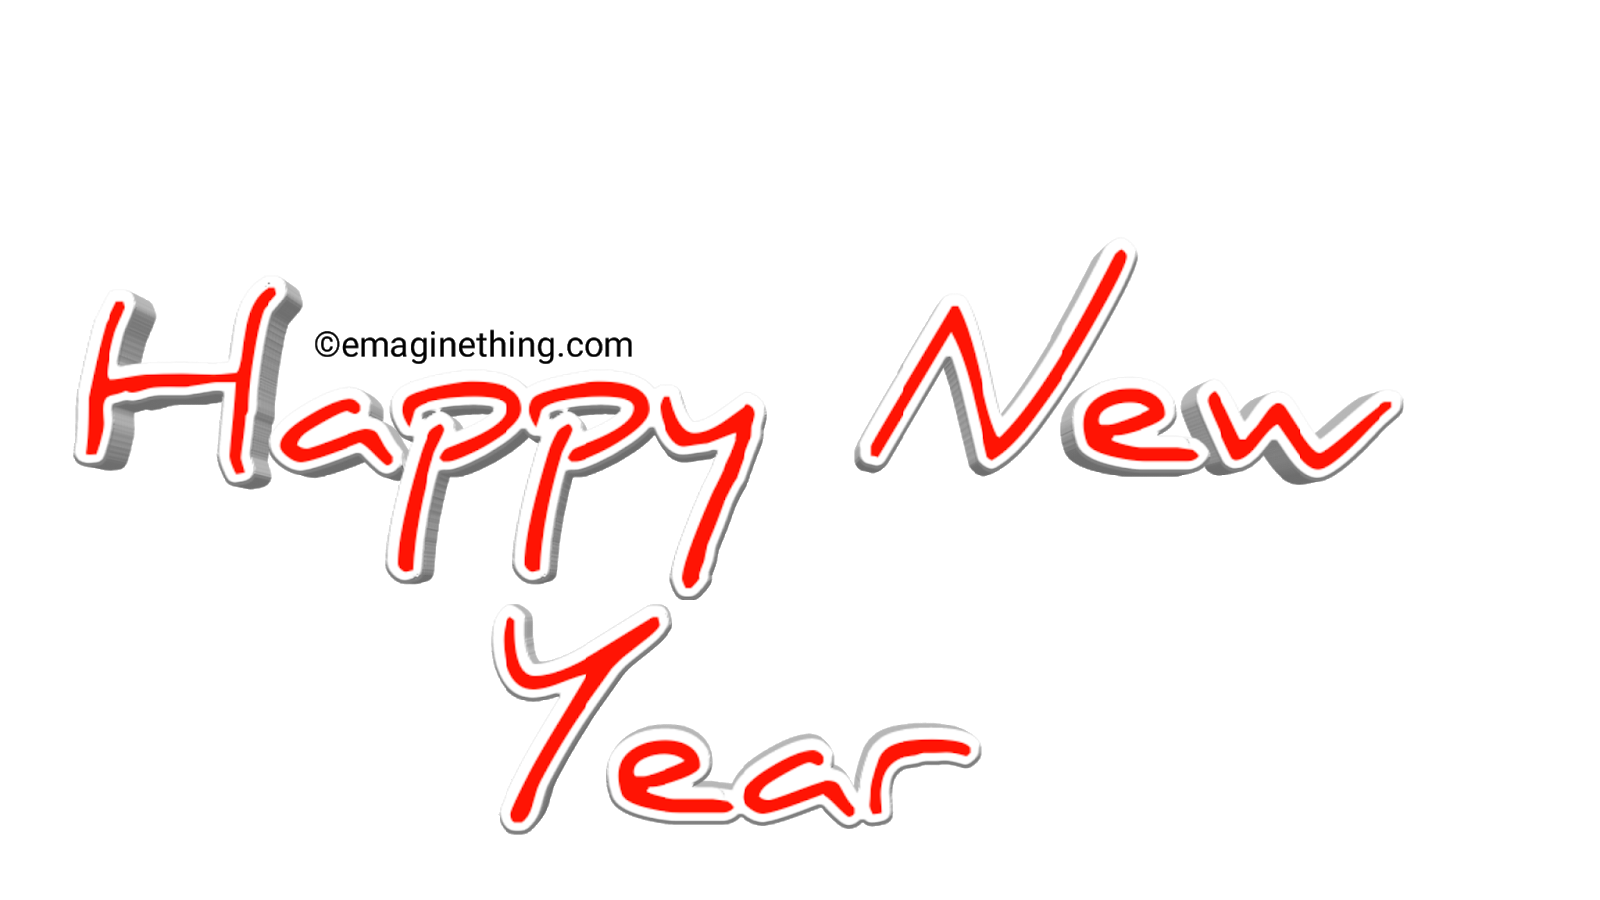 Happy New Year Text Png 2019 Whatsapp Sticker Download Emaginething Happy New Year Text New Year Text Png Text